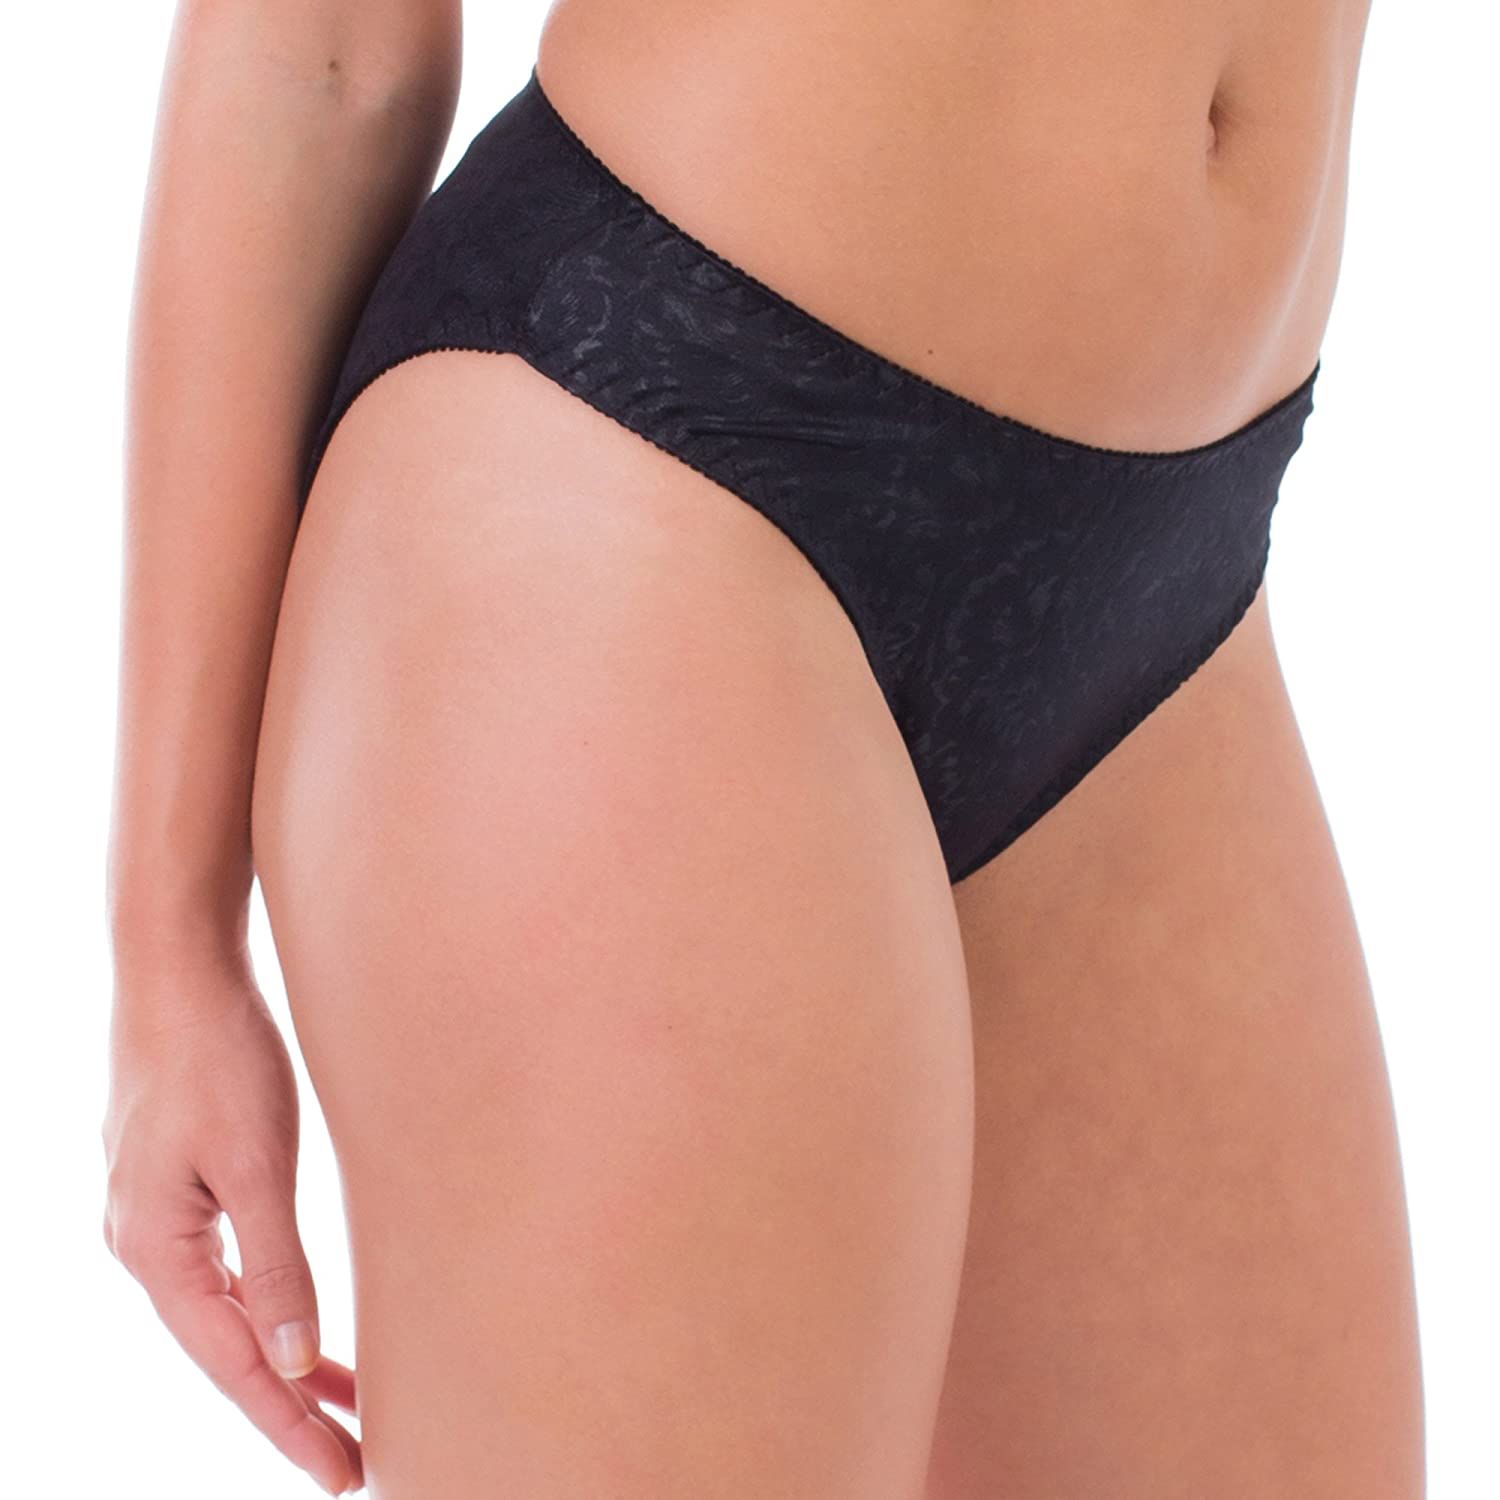 Women's comfortable full coverage bikini panty, Black, M